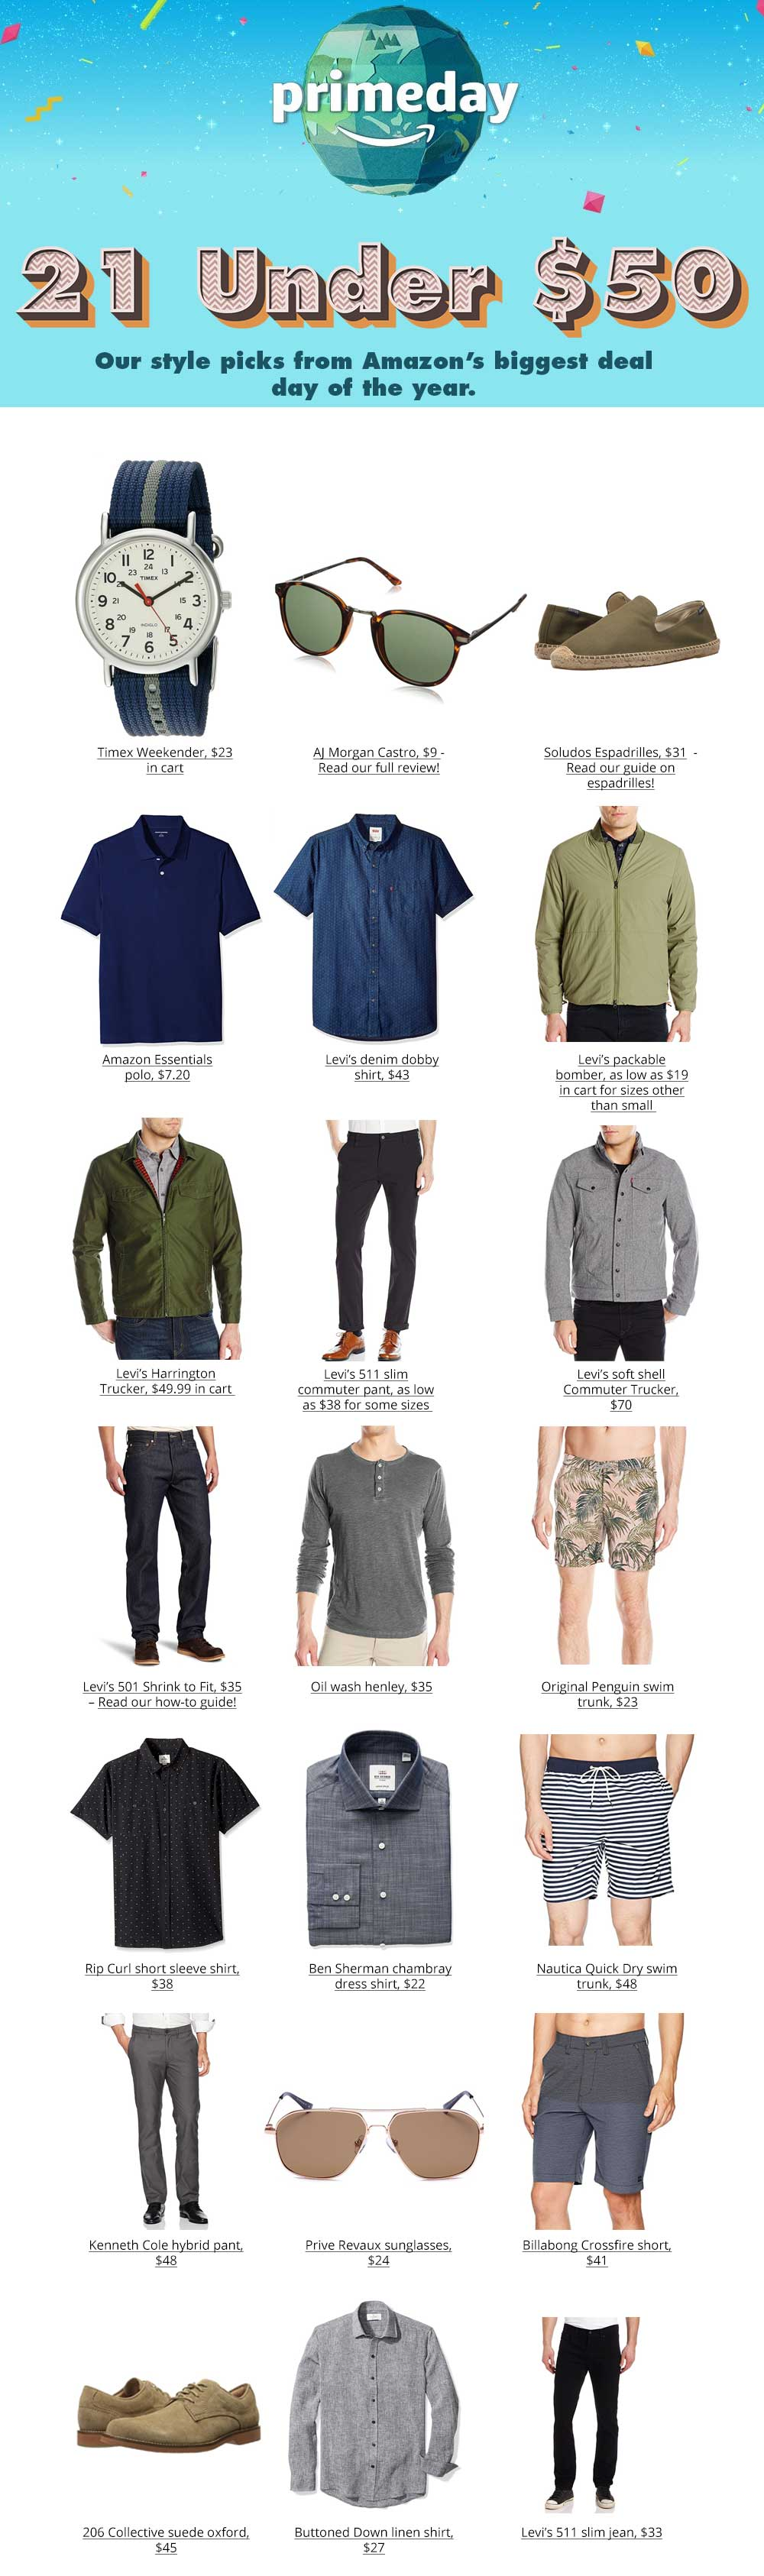 prime day men's fashion deals